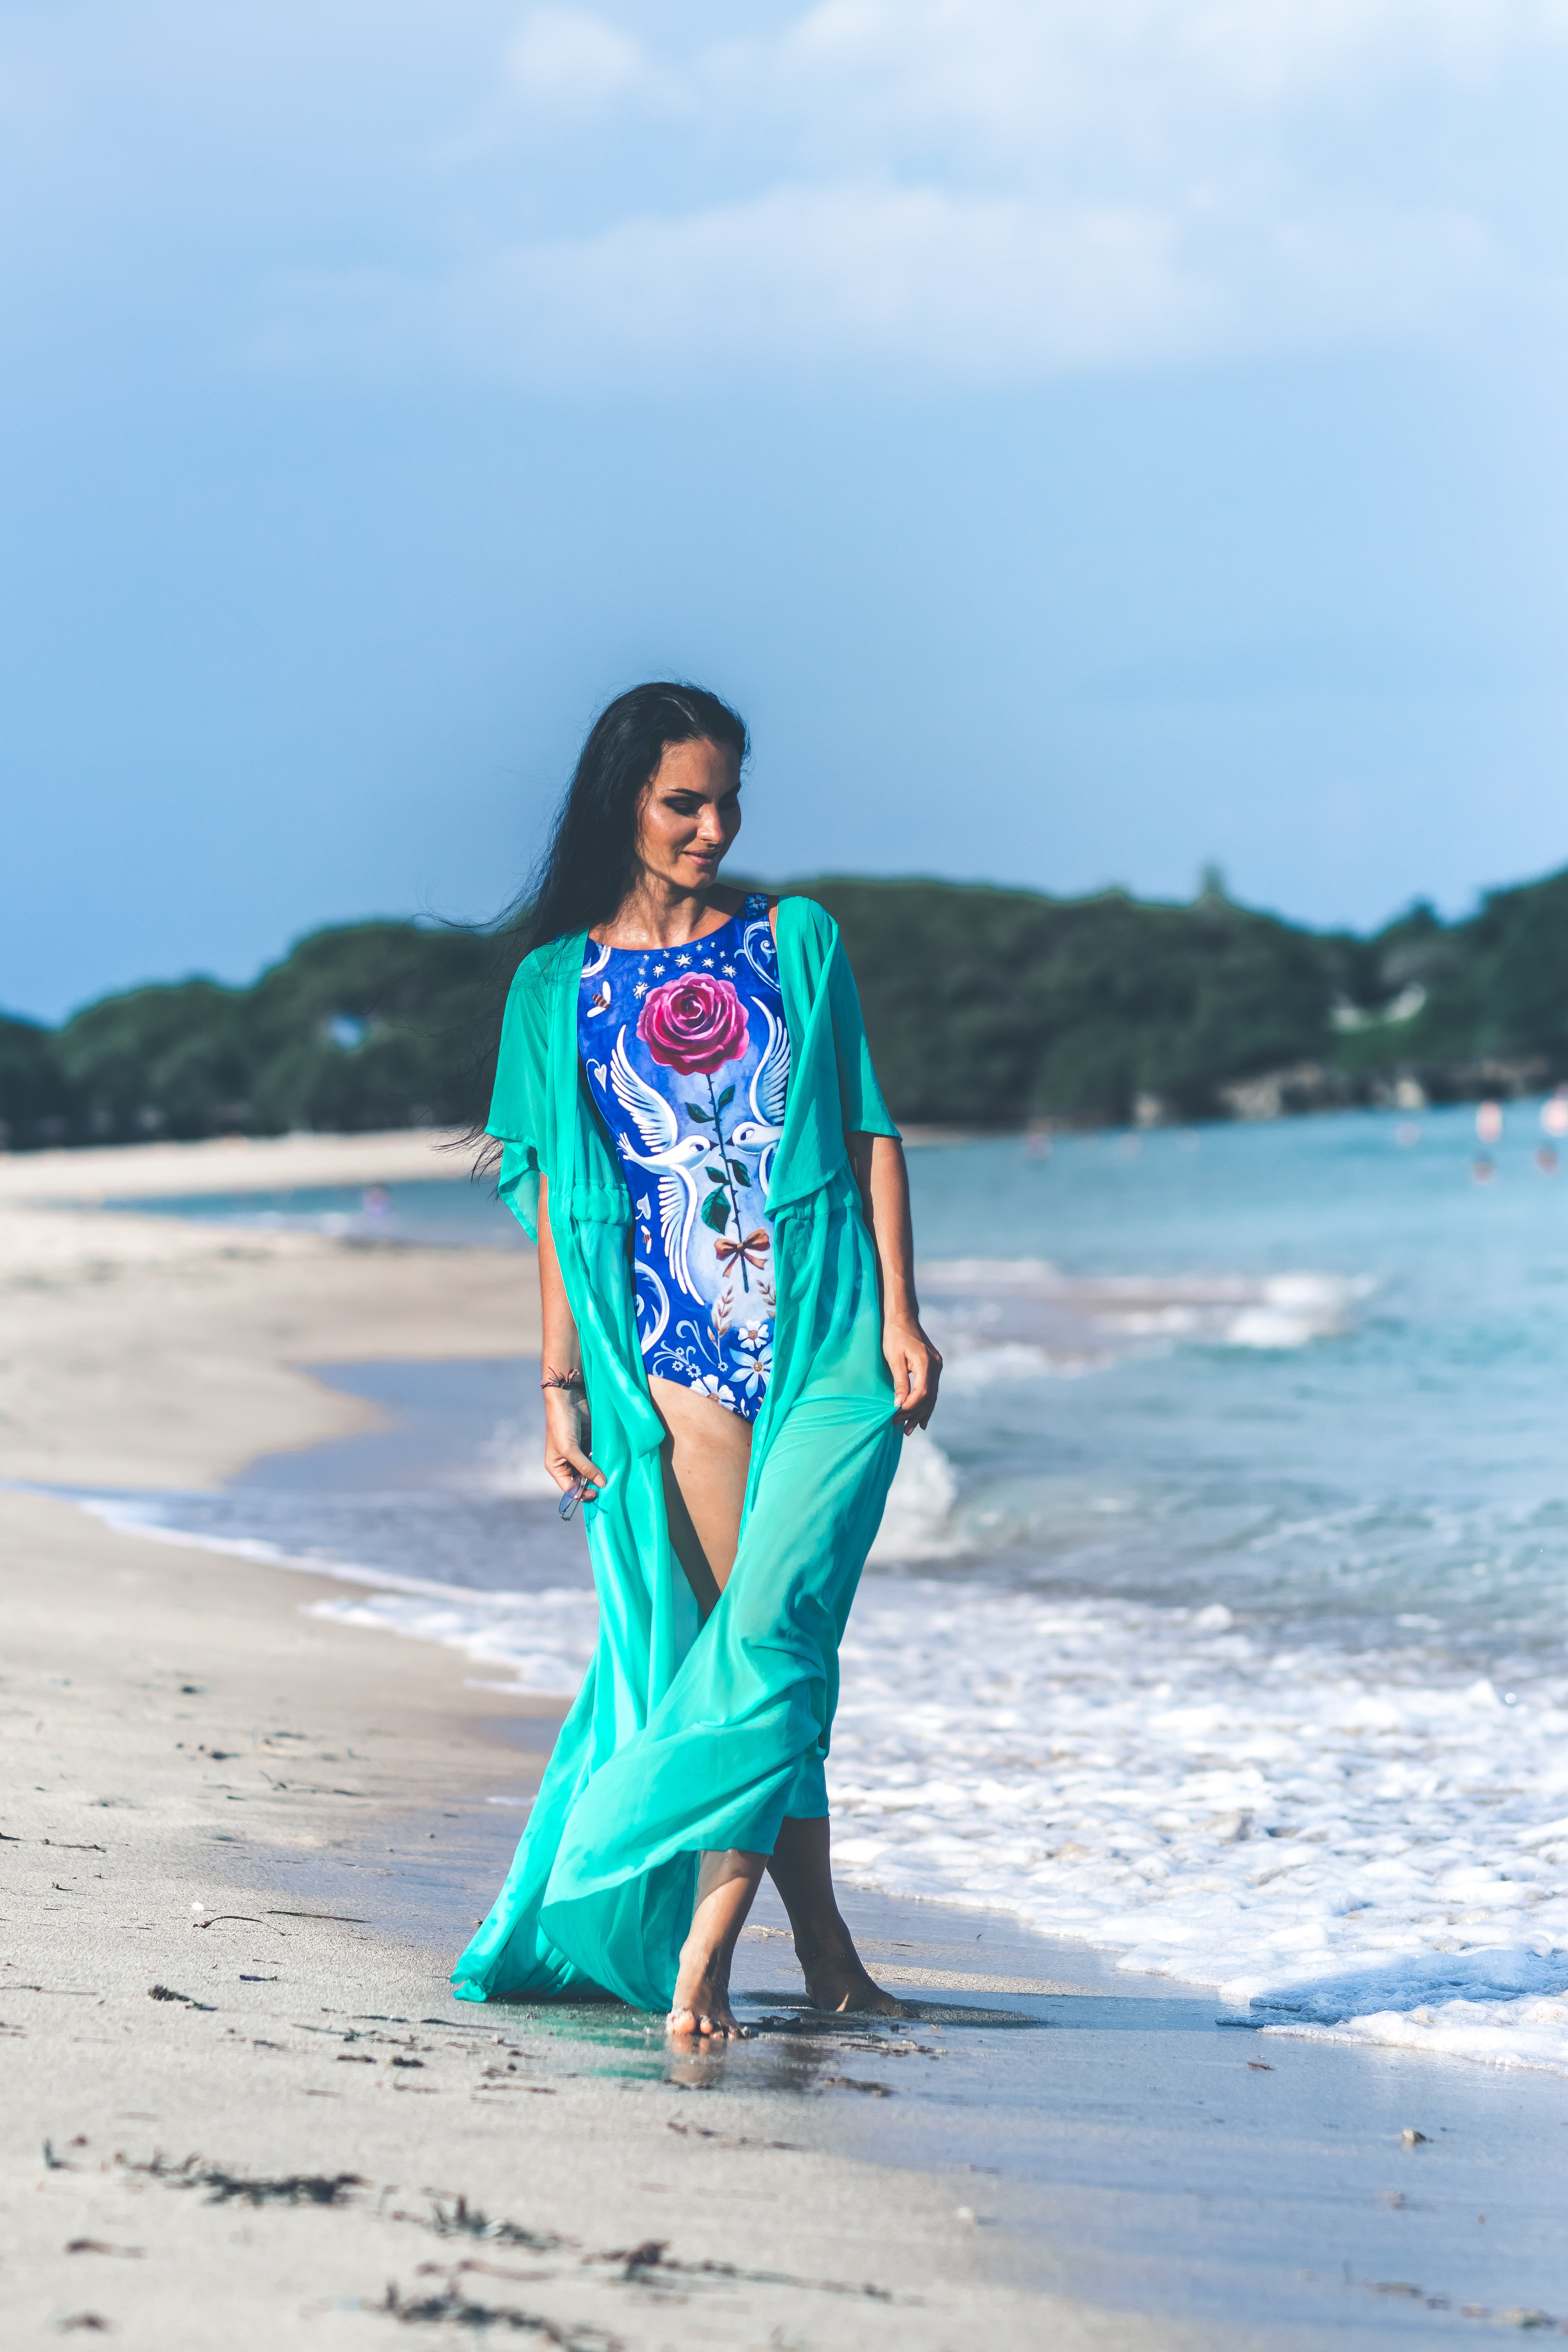 Woman in Blue and Pink Floral Monokini Standing at the Seashore